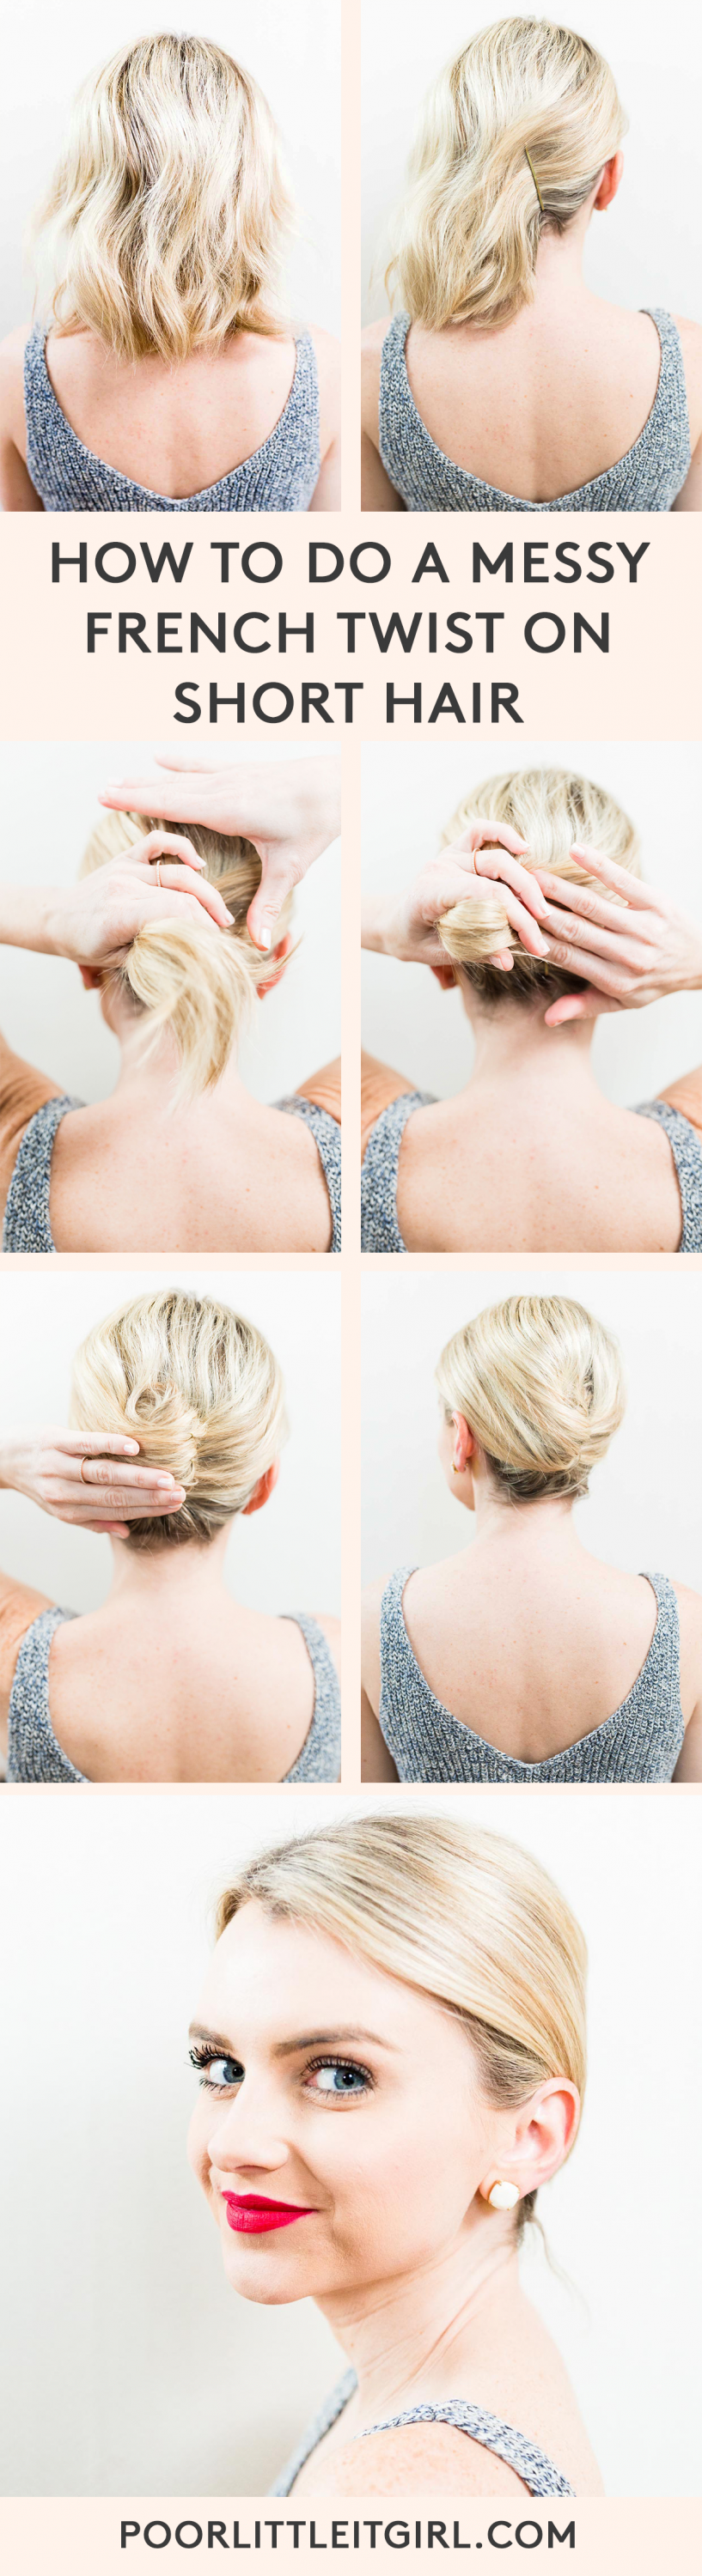 A Simple French Twist For Short Hair Fashionista Hair Styles Short Hair Tutorial Short Hair Updo